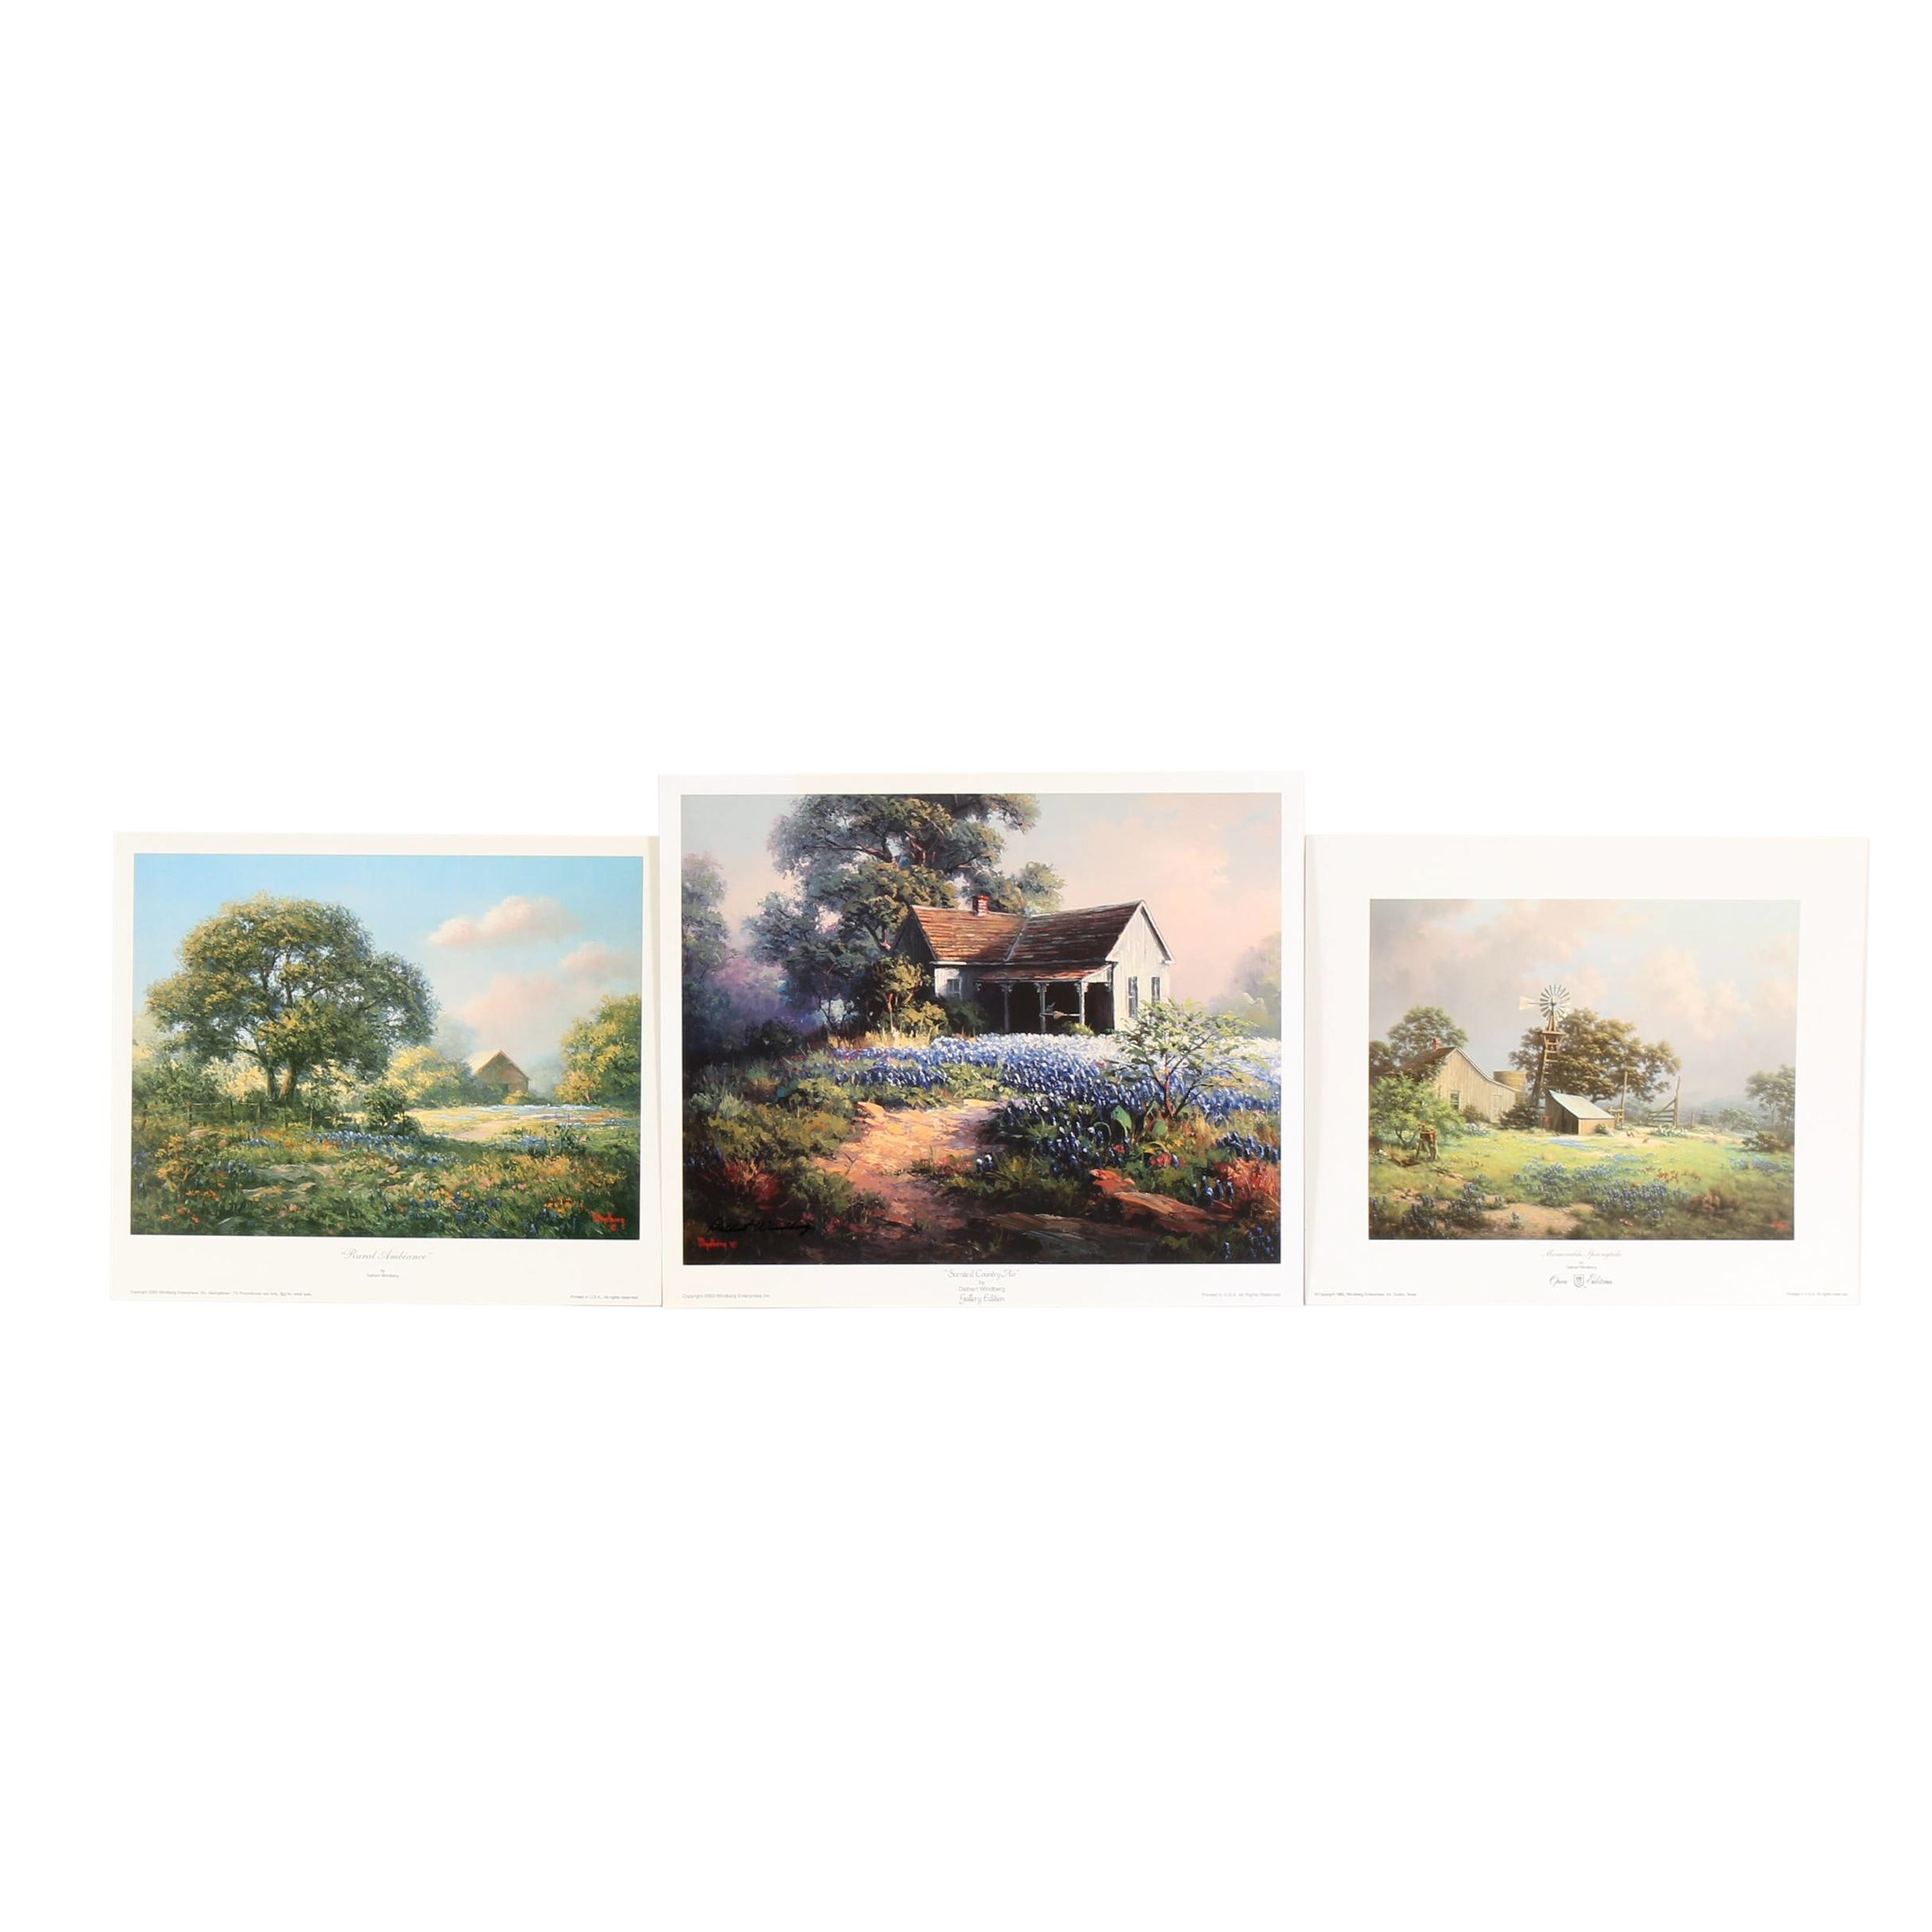 """Dalhart Windberg Offset Lithographs Including """"Scented Country Air"""""""